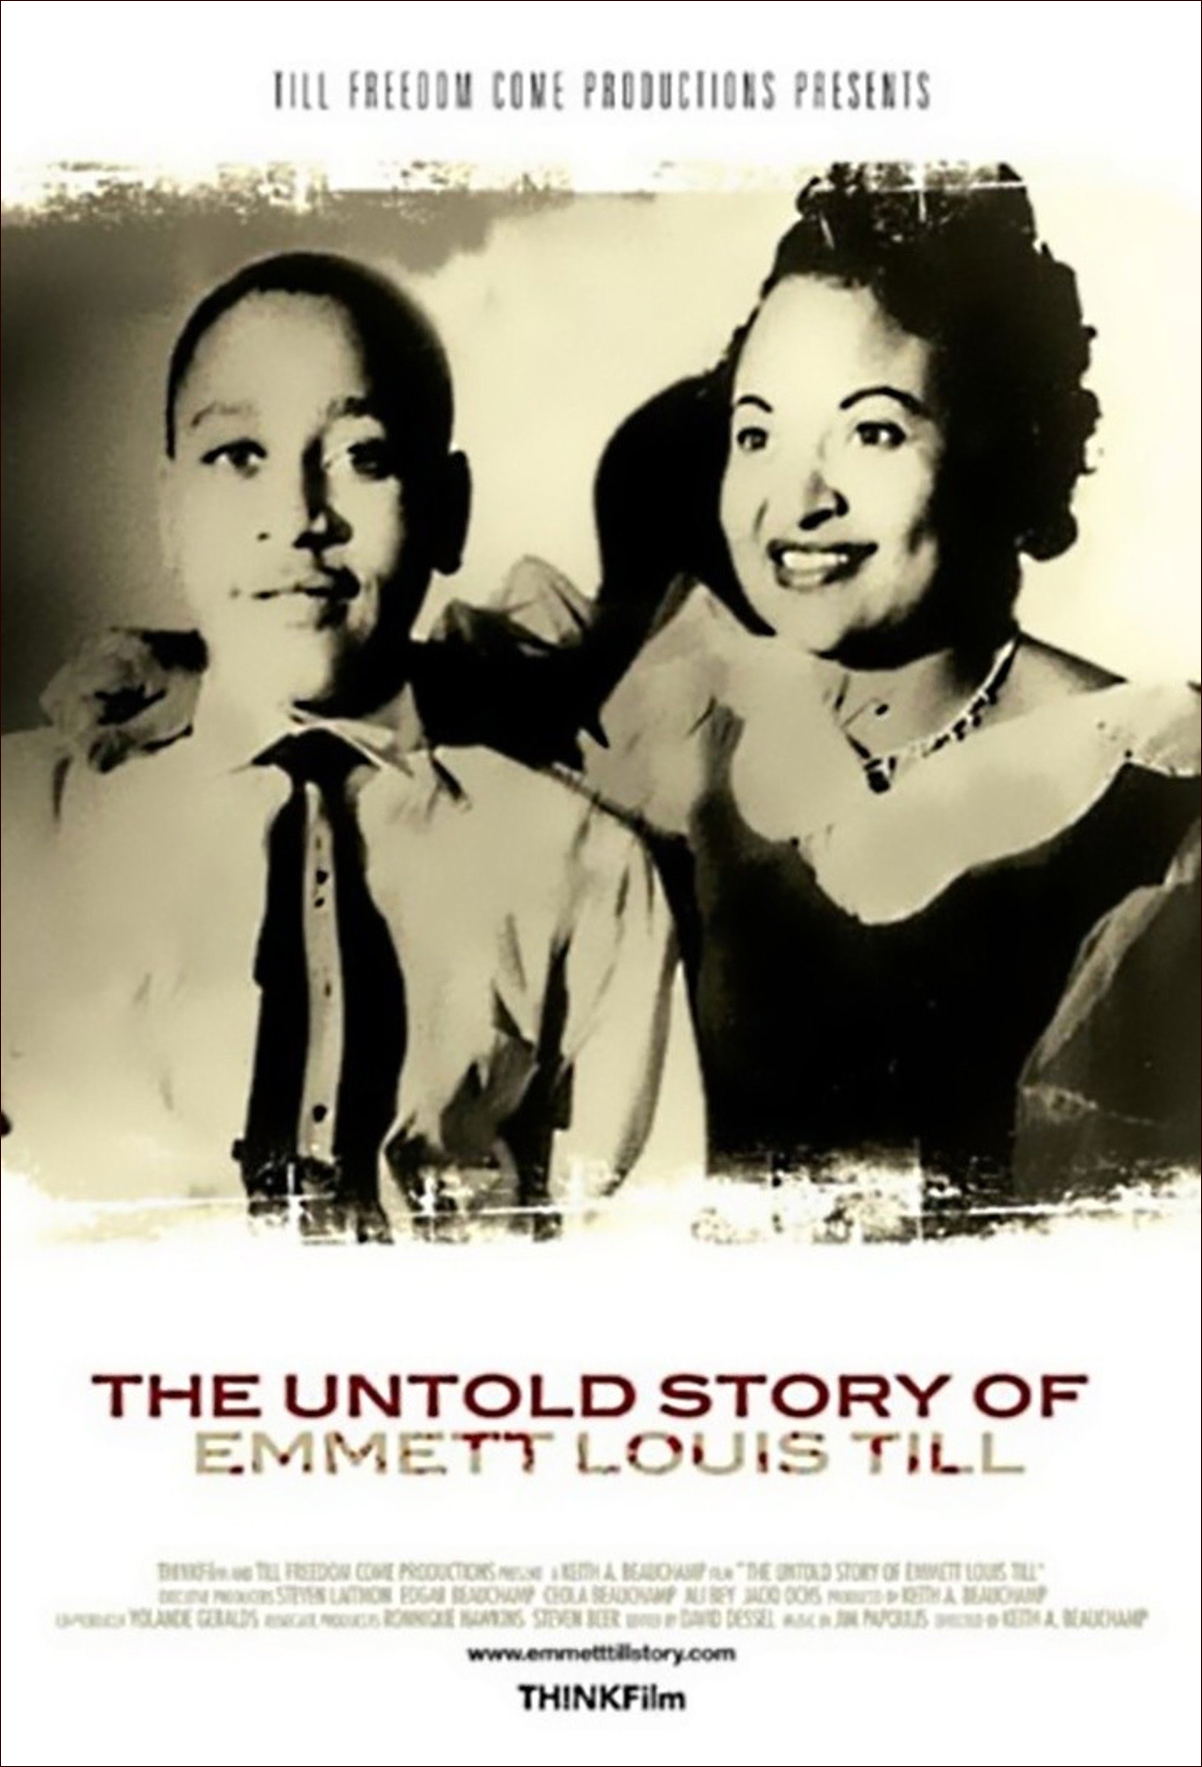 The Untold Story of Emmett Till Film Poster